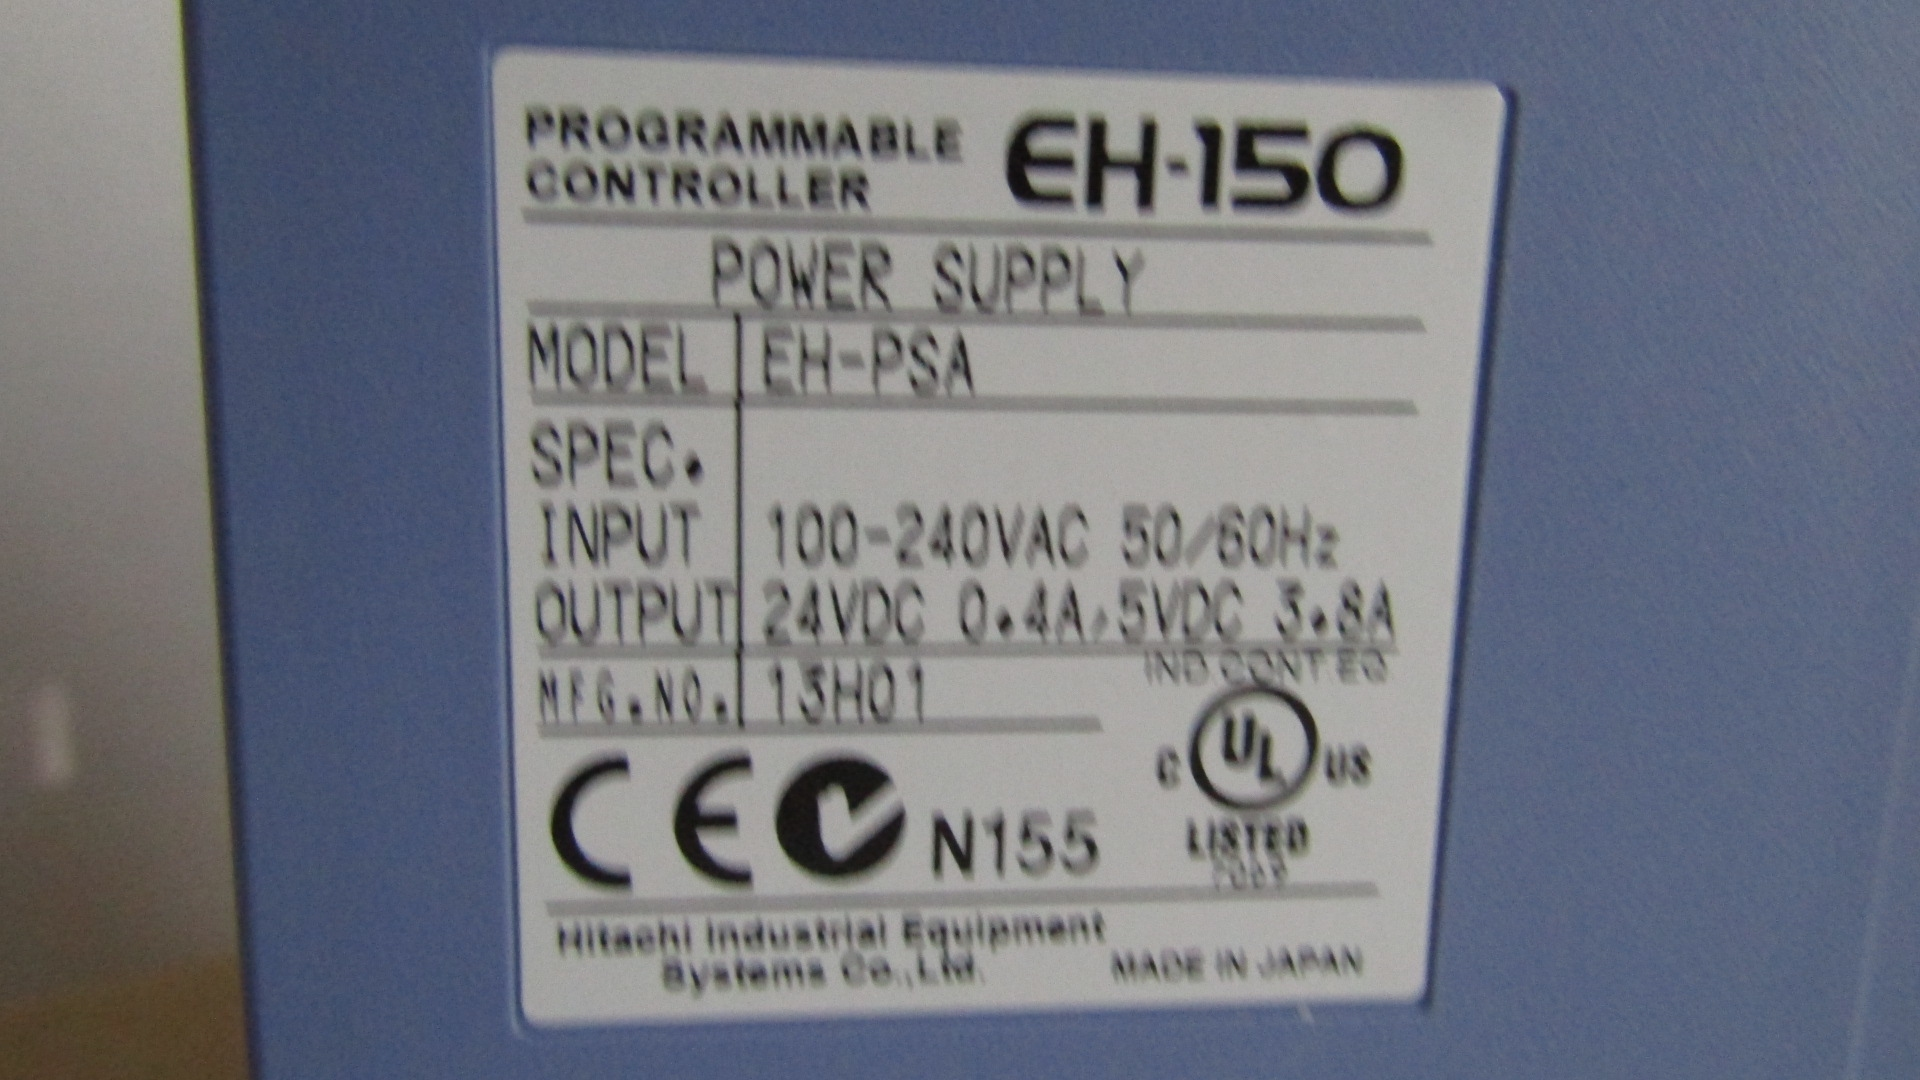 EH-PSA power supply Hitachi EH-150 programmable controller